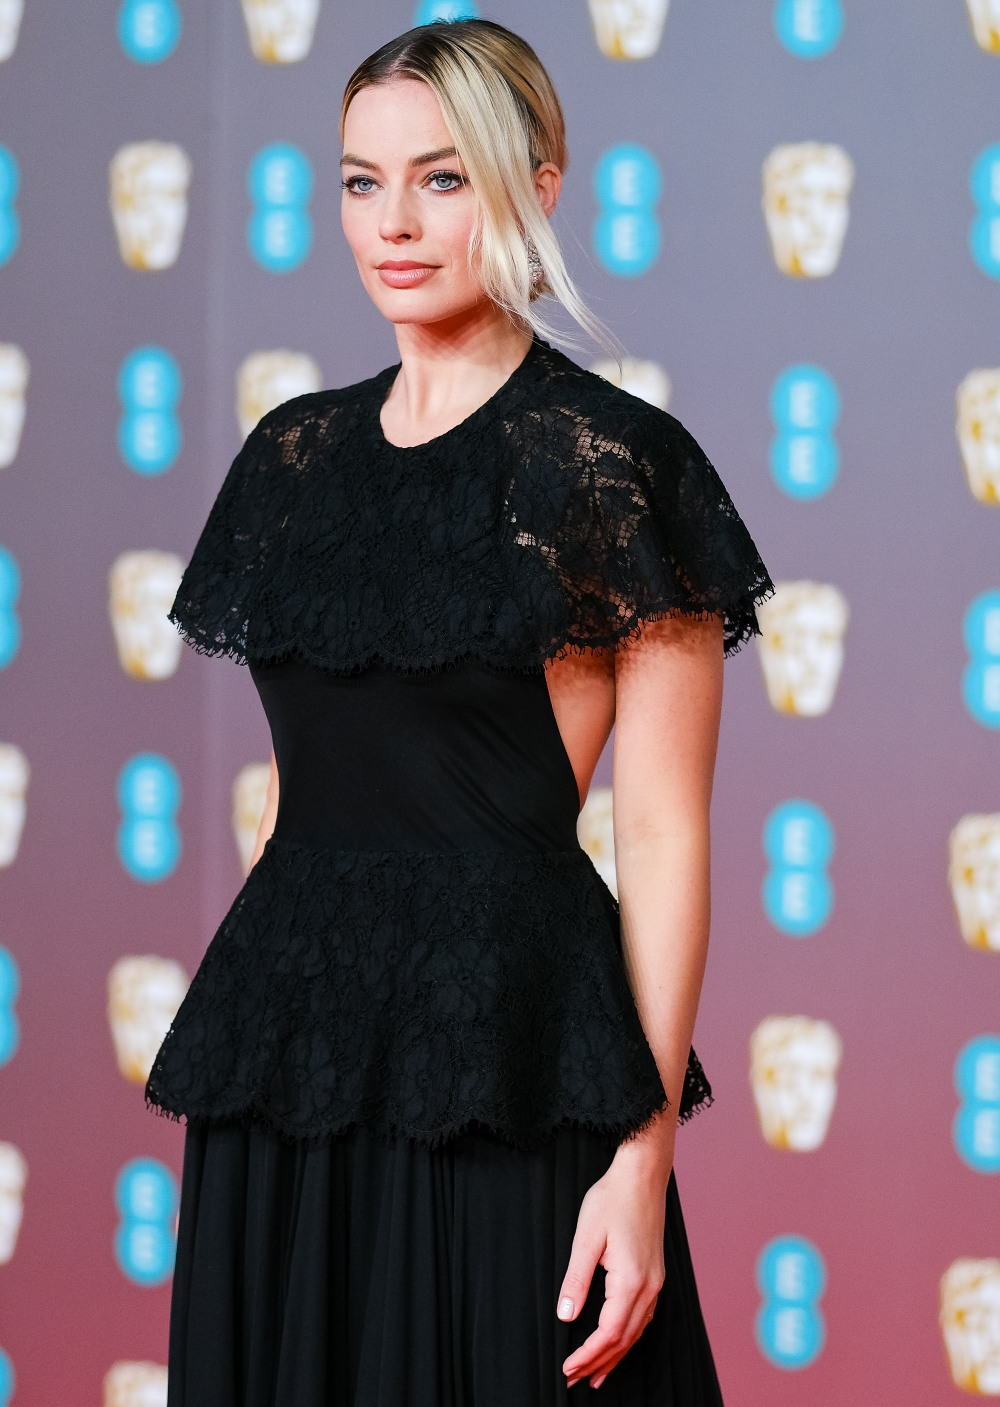 Margot Robbie attends the 2020 EE British Academy Film Awards on Sunday 2 February 2020